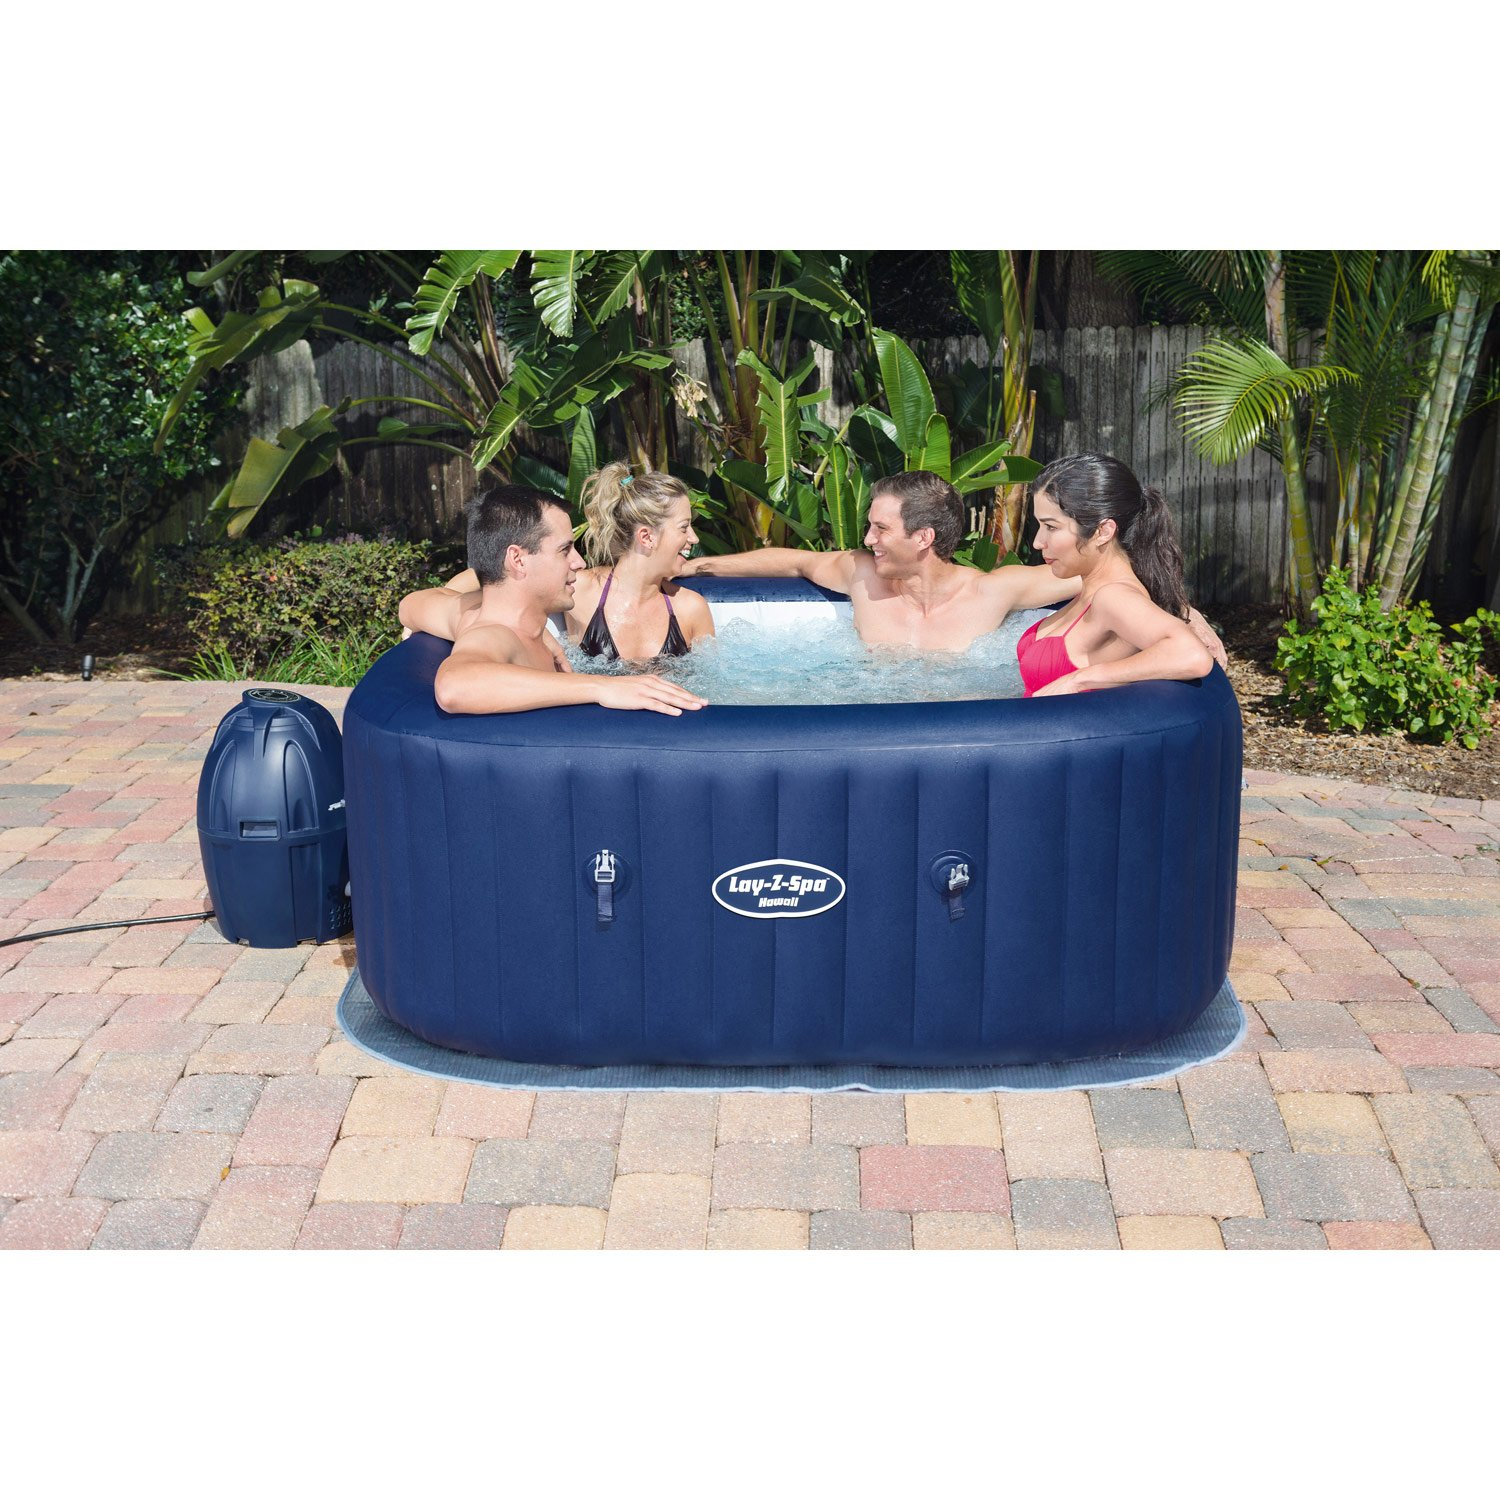 spa jacuzzi gonflable 4 places